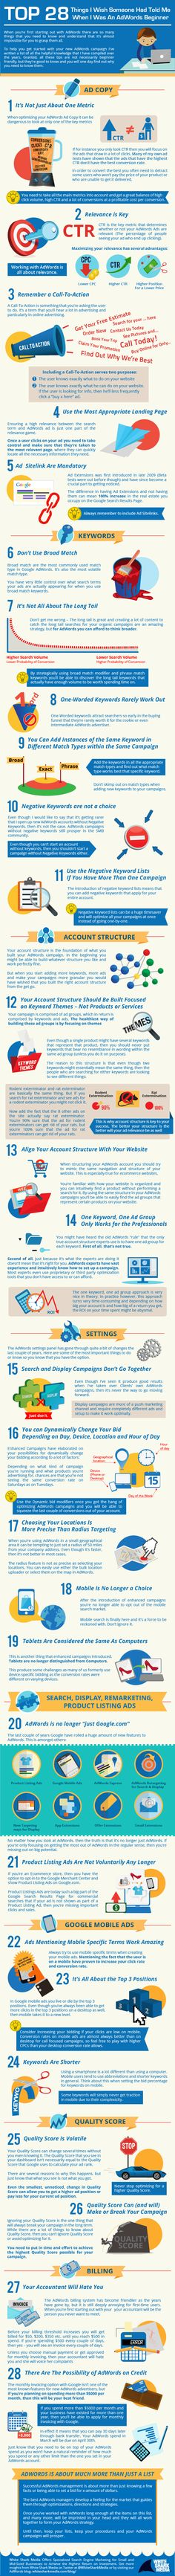 28 Awesome Tips For Adwords Newbies Imgrind Building Better Marketers Affiliate Marketing Lead Gener Marketing Automation, Inbound Marketing, Marketing Digital, Marketing Mail, Mundo Do Marketing, Marketing Trends, Marketing Online, Online Advertising, Content Marketing